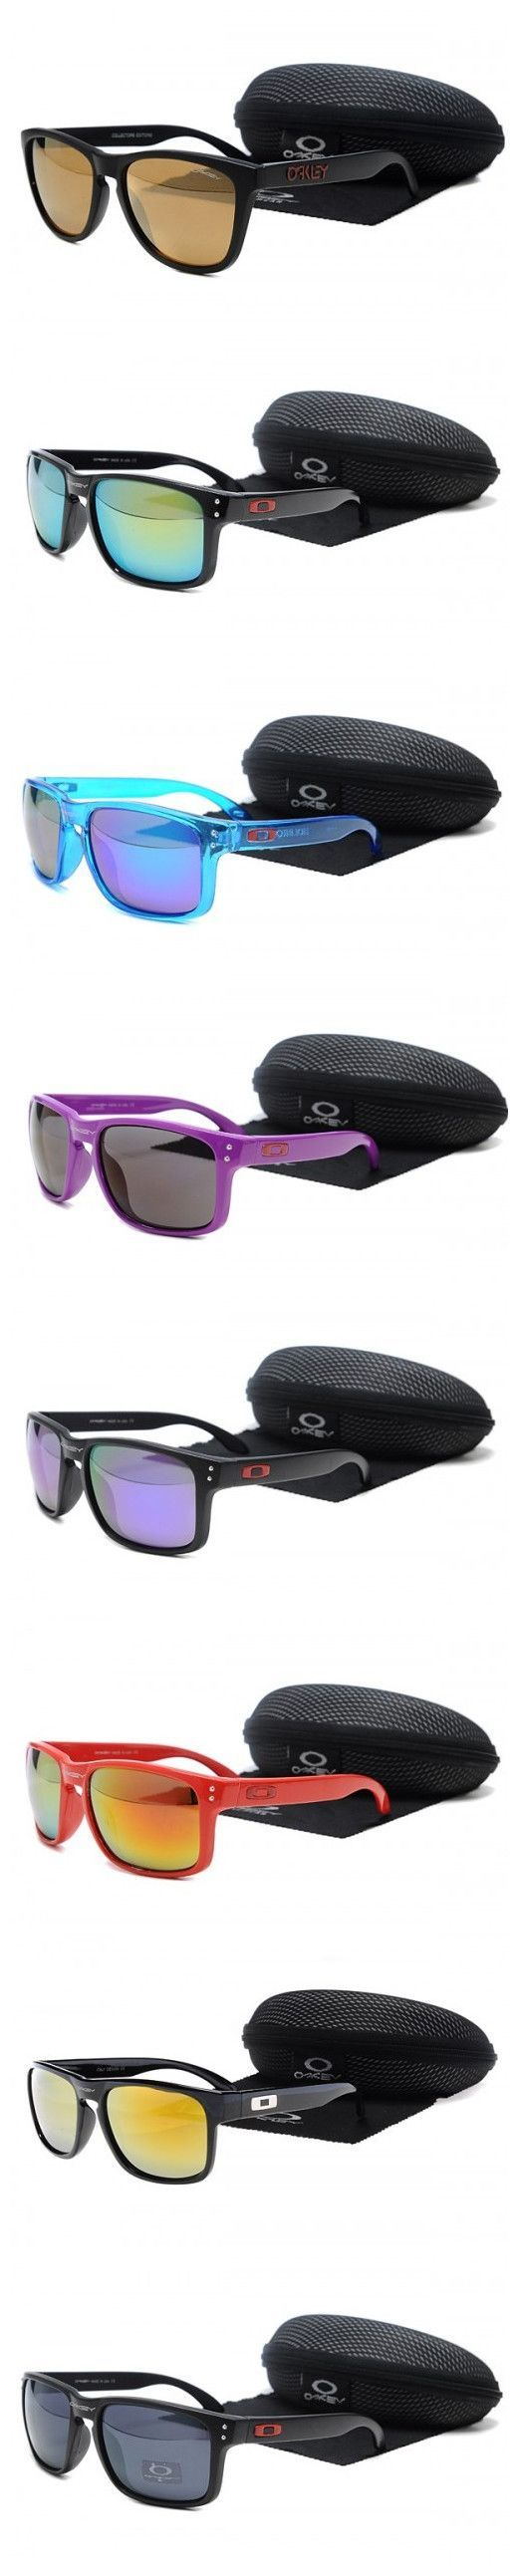 oakley outlet lancaster  78 best images about eyewear on pinterest